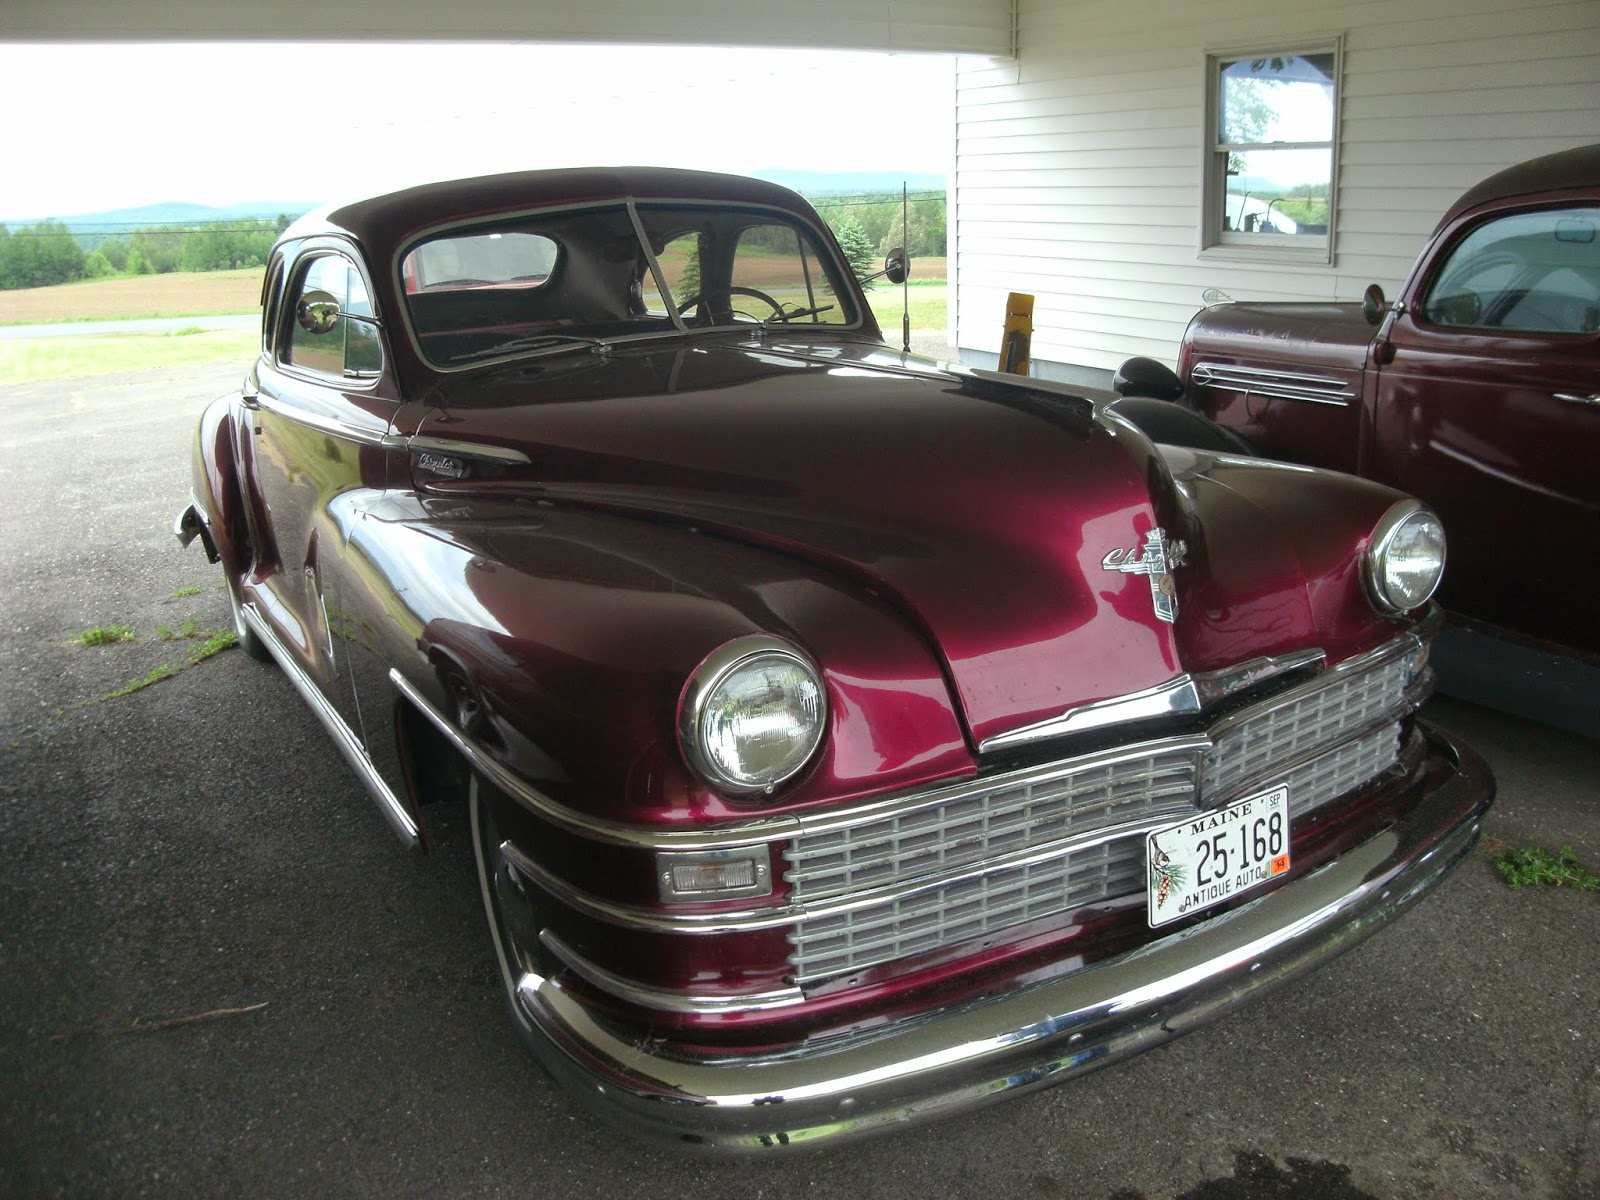 CARHUNTER : A GREAT COLLECTION UP IN MAINE